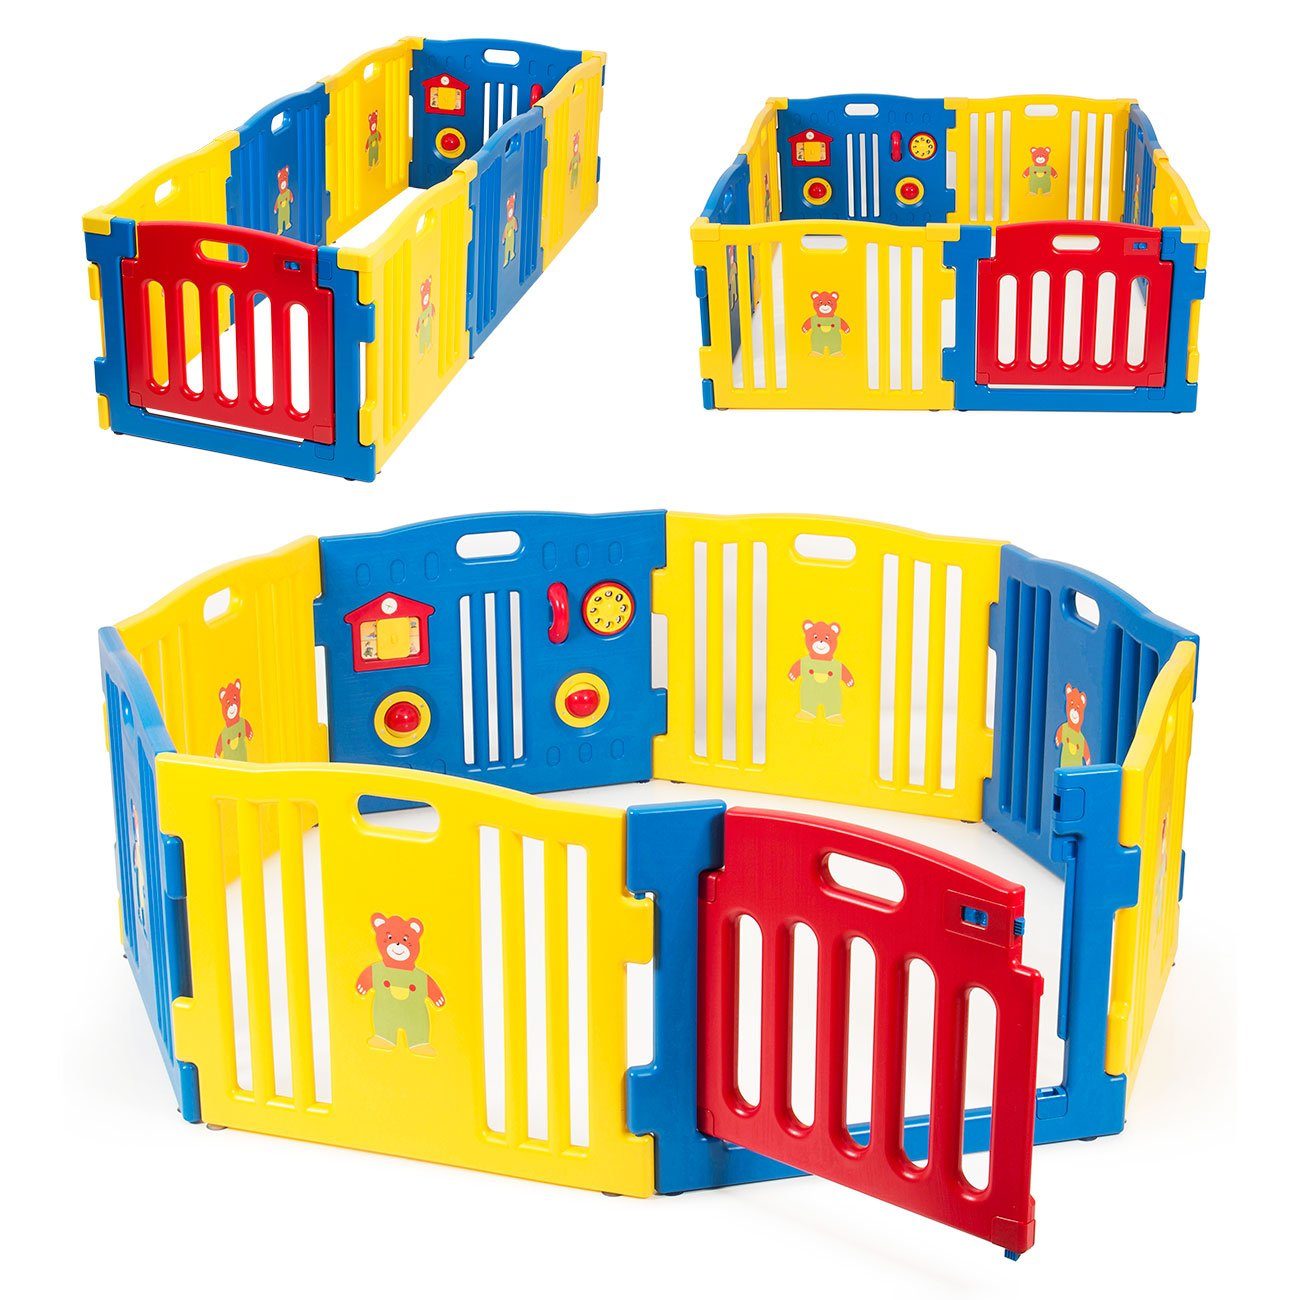 Kidzone Baby Playpen Kids 8 Panel Safety Play Center Gt Enclosures Panels Boards Electrical Boxes Yard Home Indoor Outdoor Pen Blue